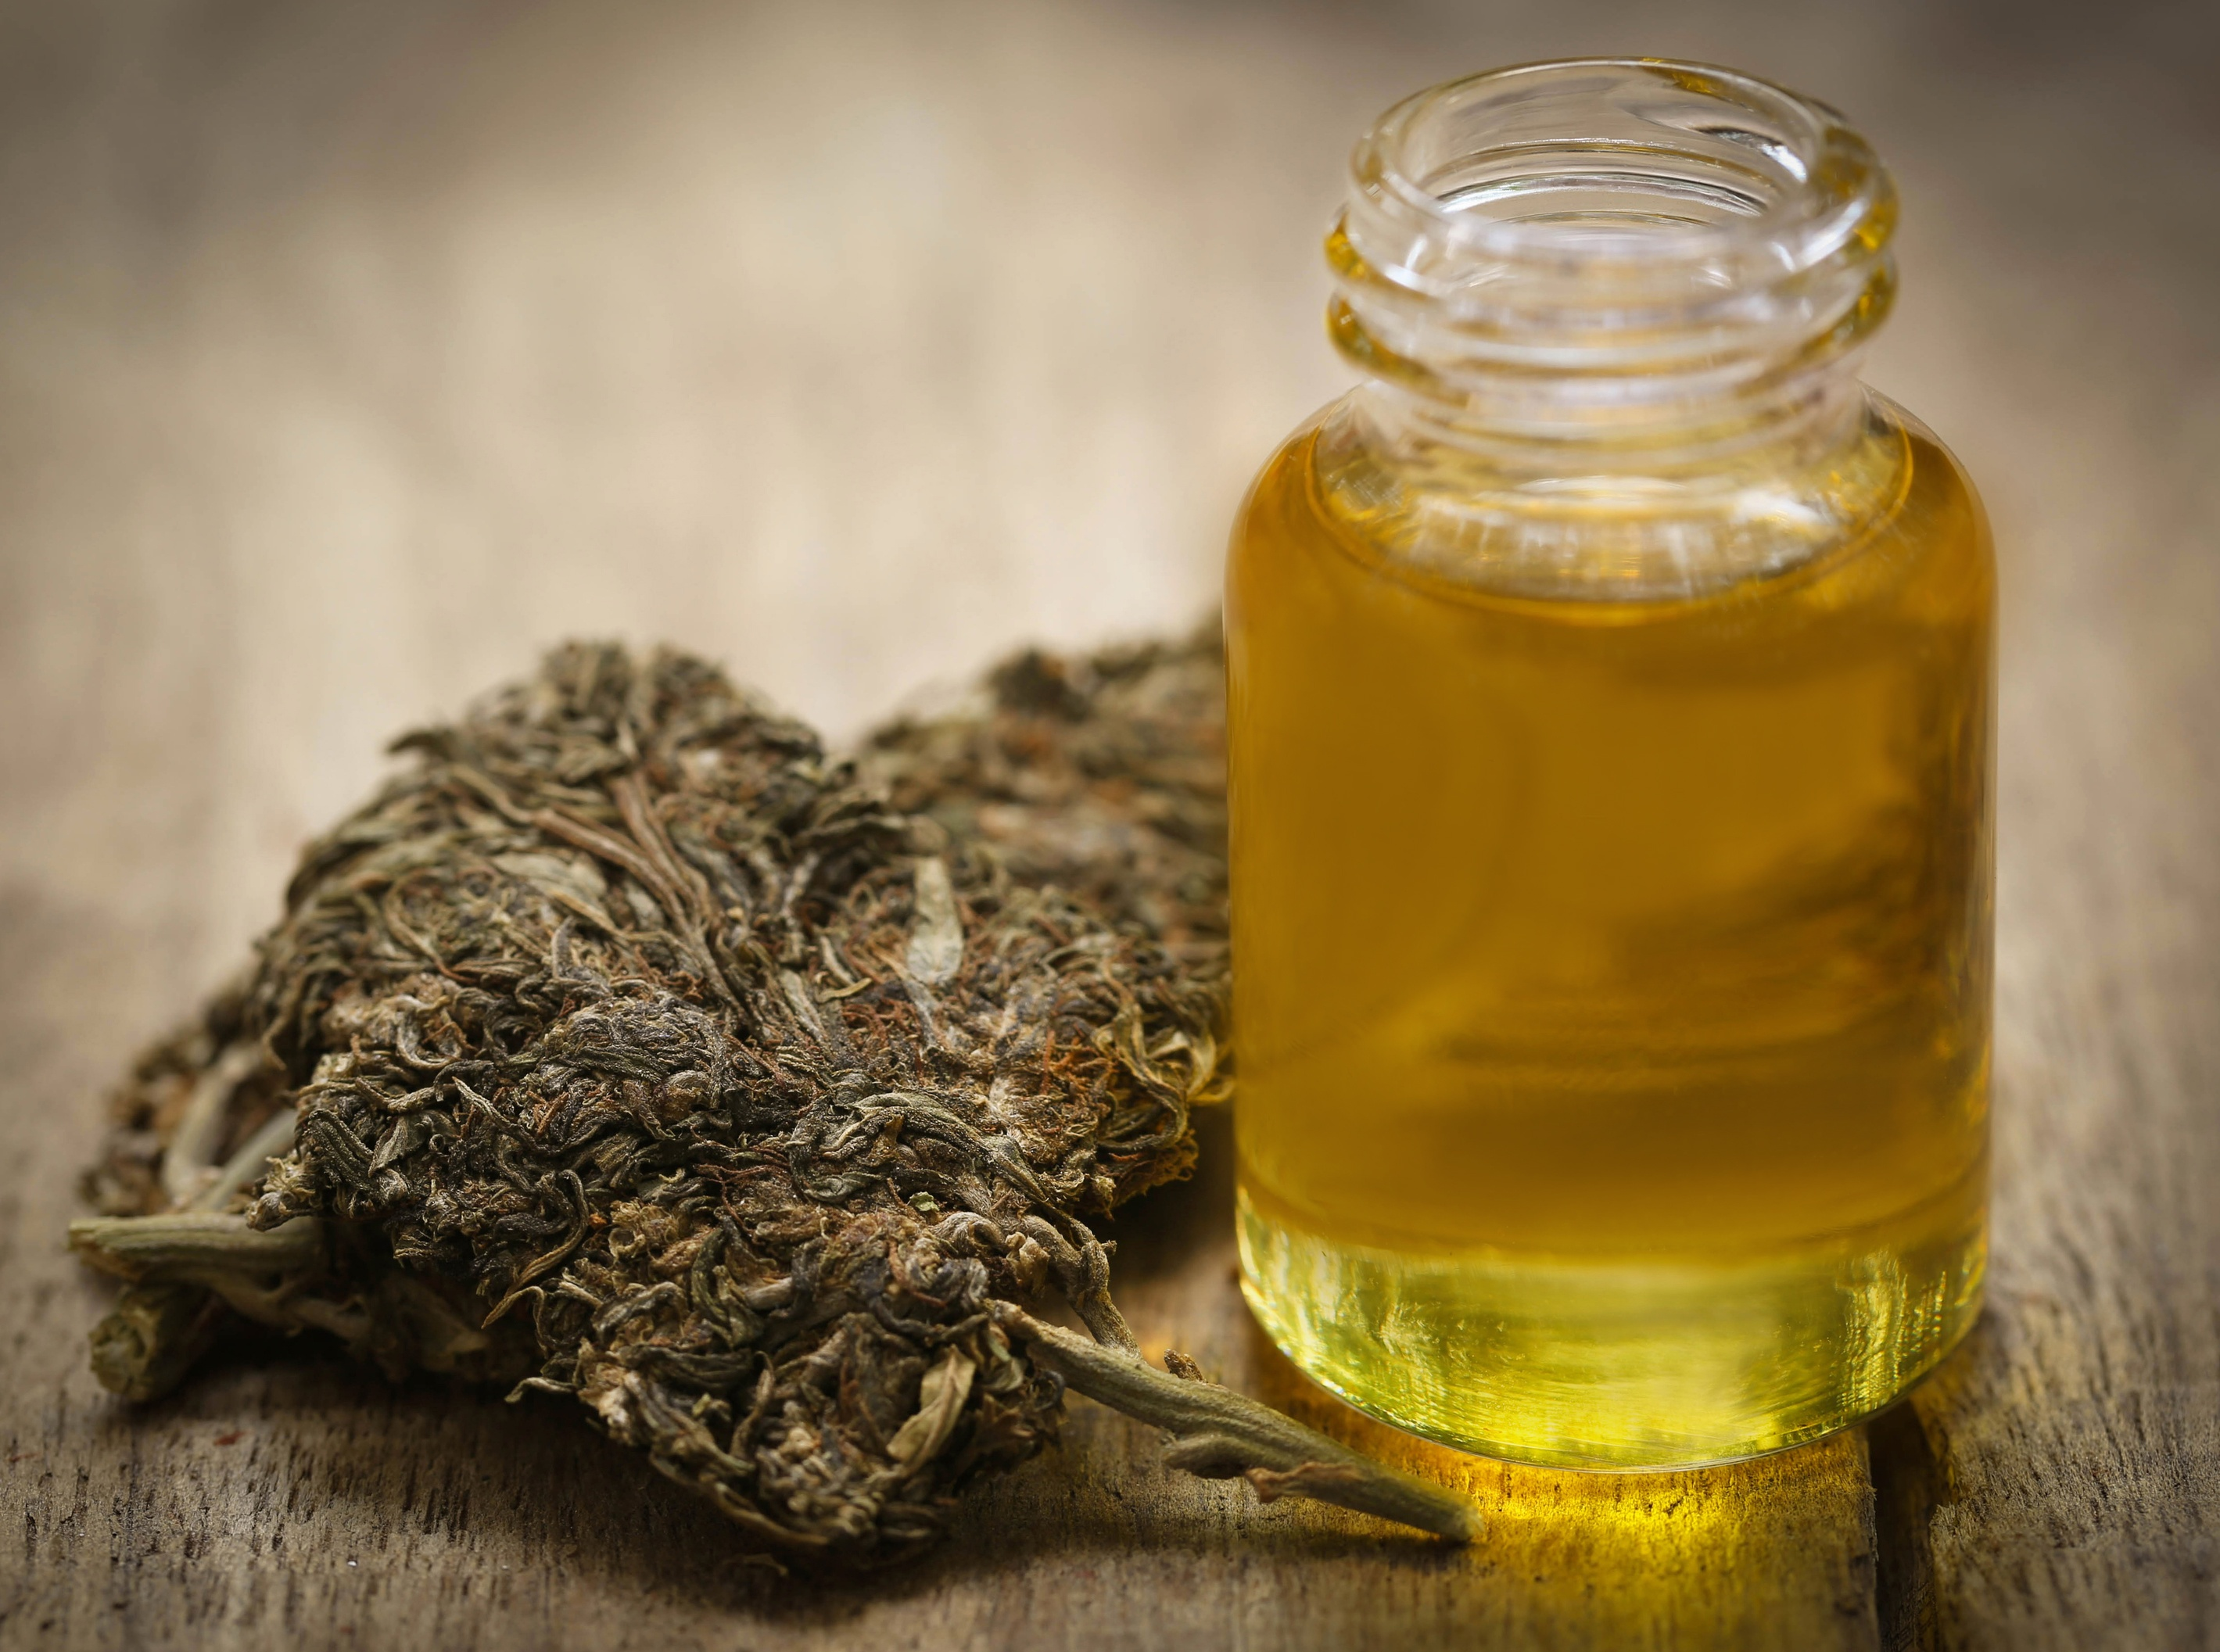 medicinal-cannabis-with-extract-oil-1.jpg